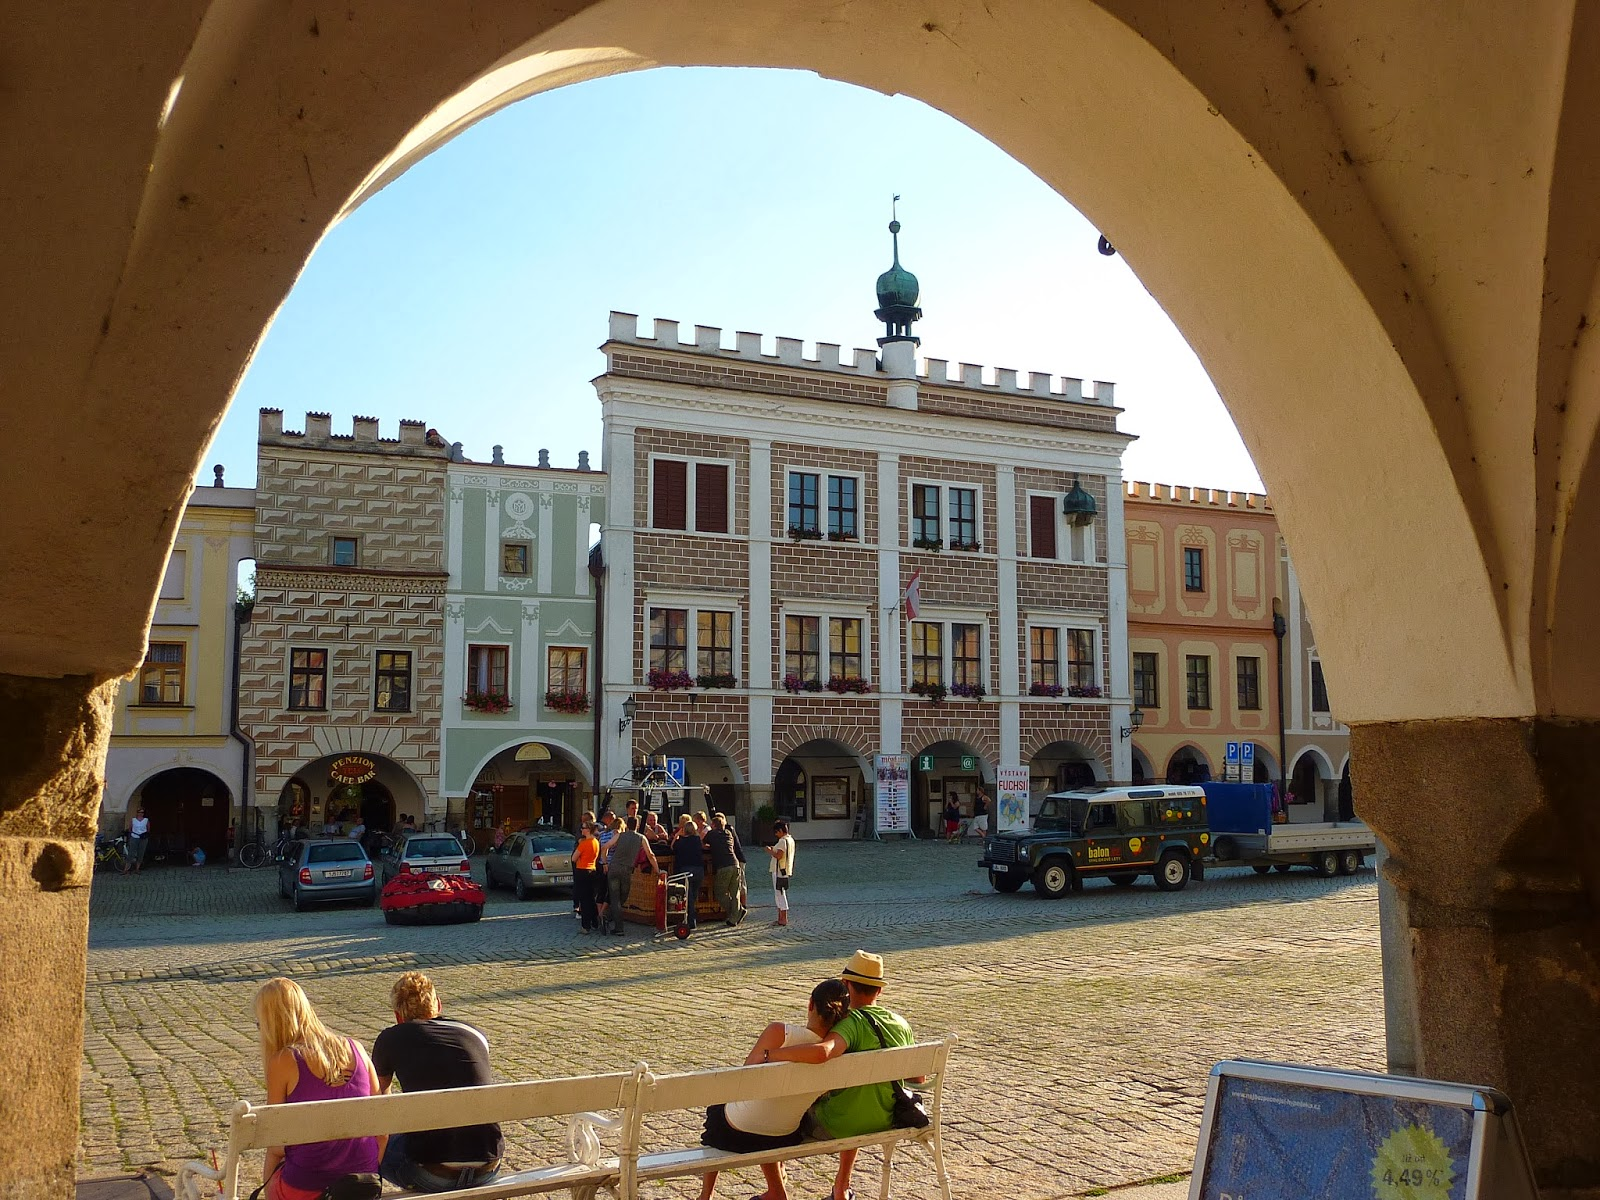 Old town plaza in Telc, Czech Republic